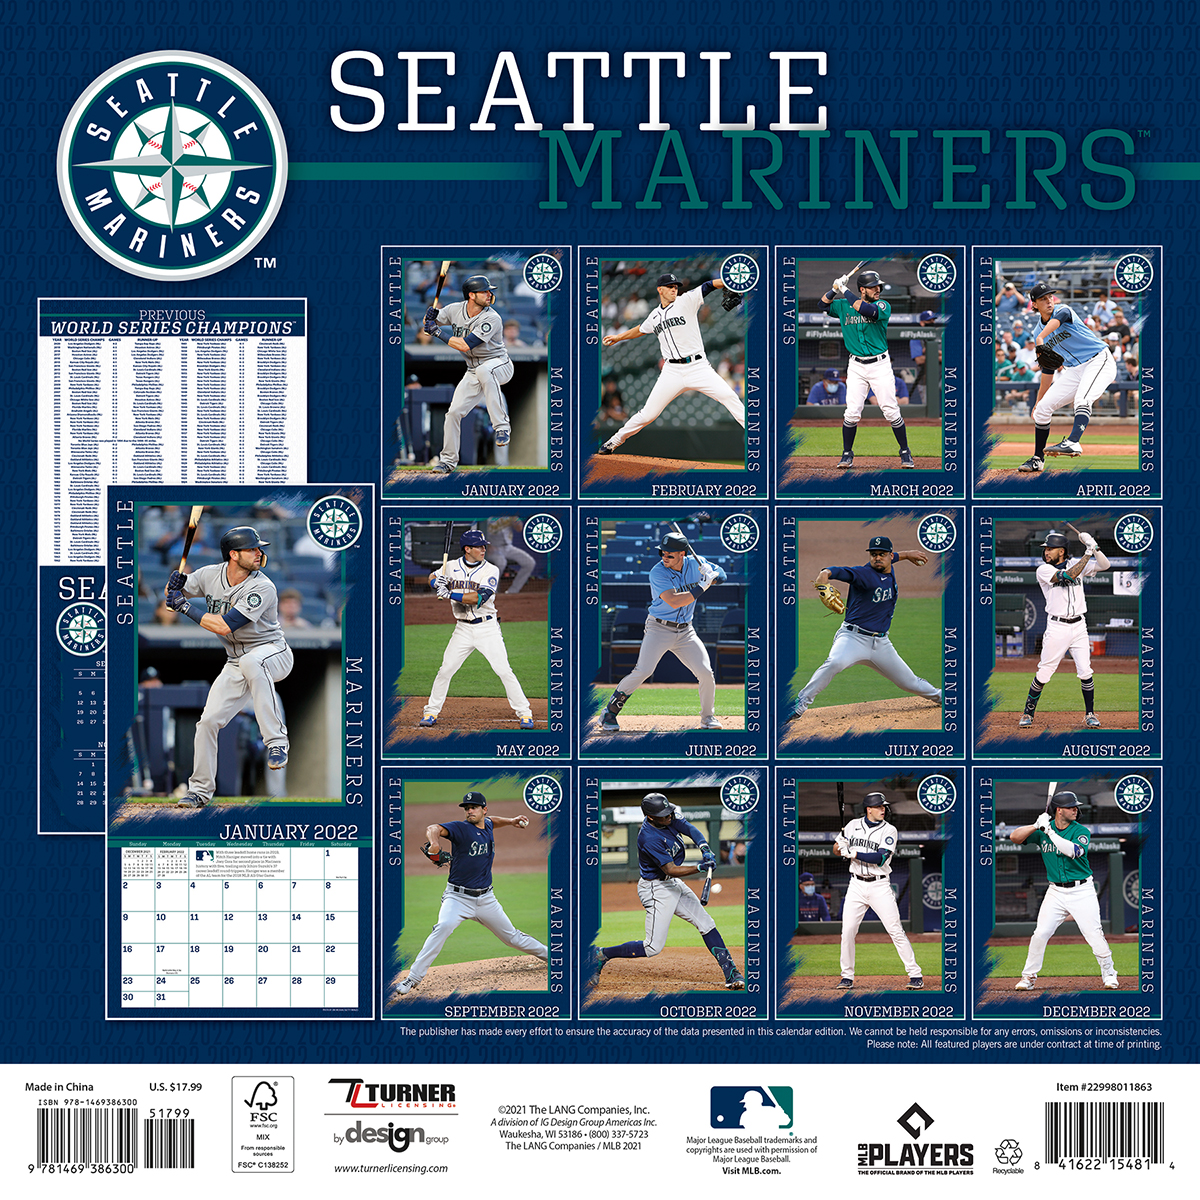 Seattle Mariners 2018 Wall Calendar Buy At Khc Sports